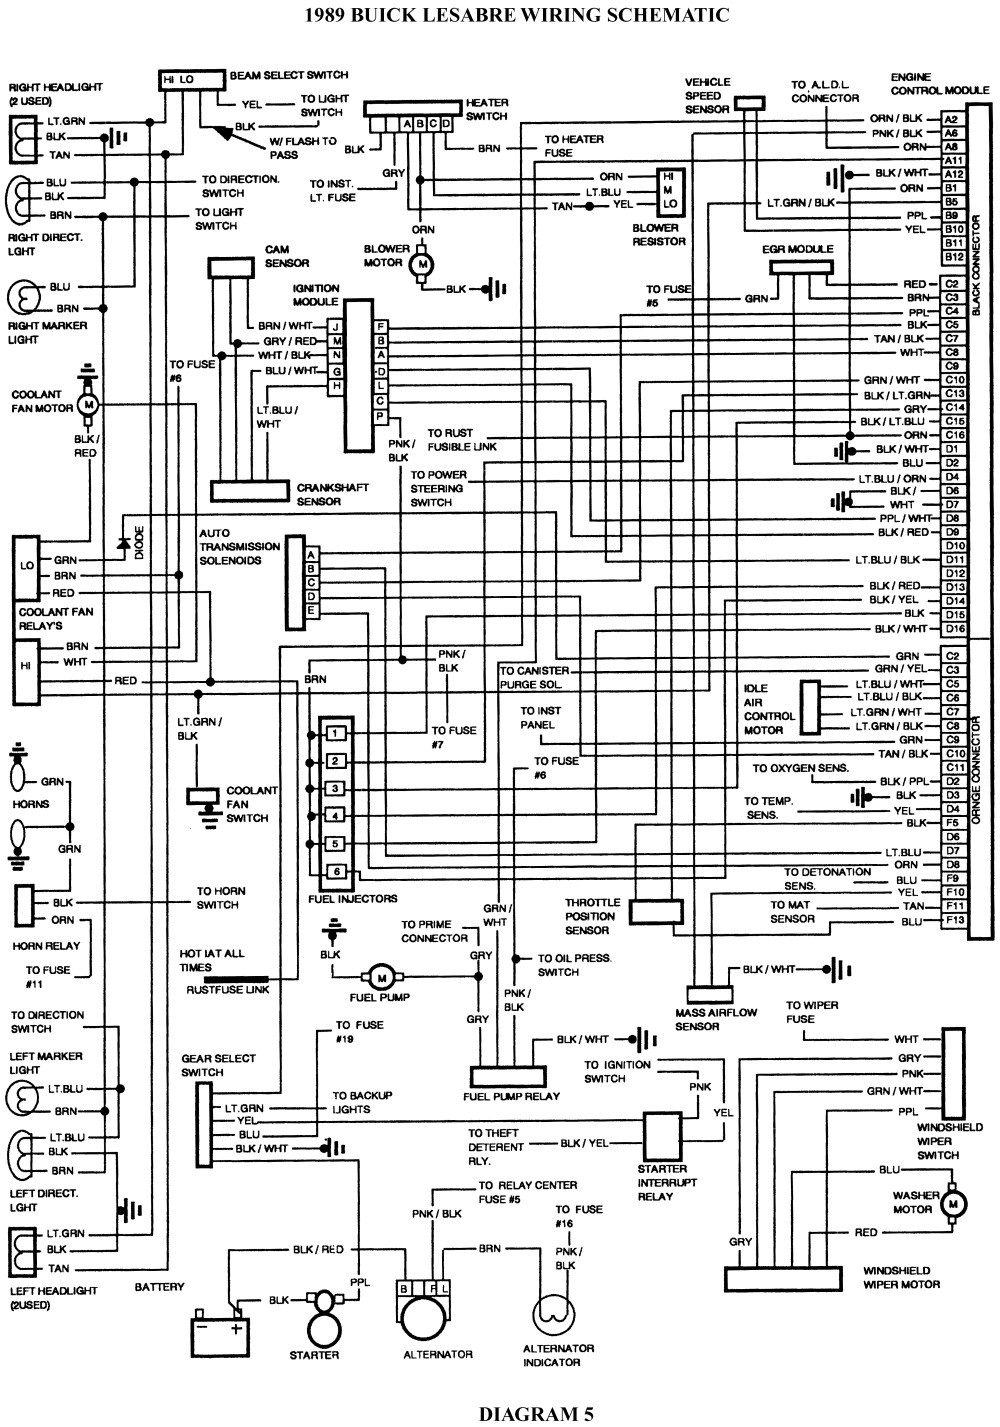 buick car stereo wiring diagram 2001 buick lesabre car stereo wiring diagram